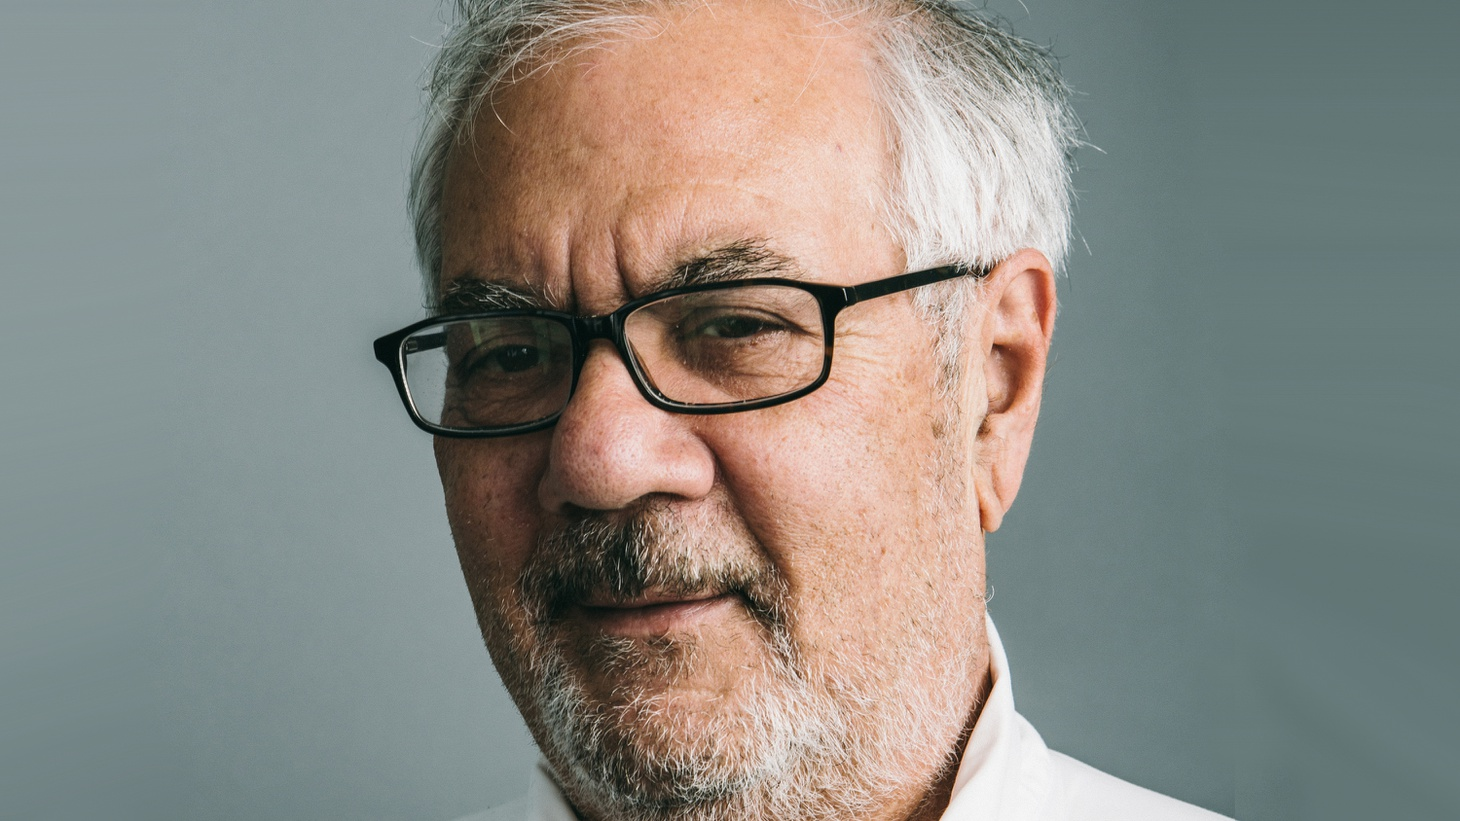 Barney Frank has retired from Congress, but he's still a powerful voice for the rights of LGBT people. We talk with him about why he was in the closet —  and how he came out . ( Part II  of this two-part conversation airs tomorrow.) 